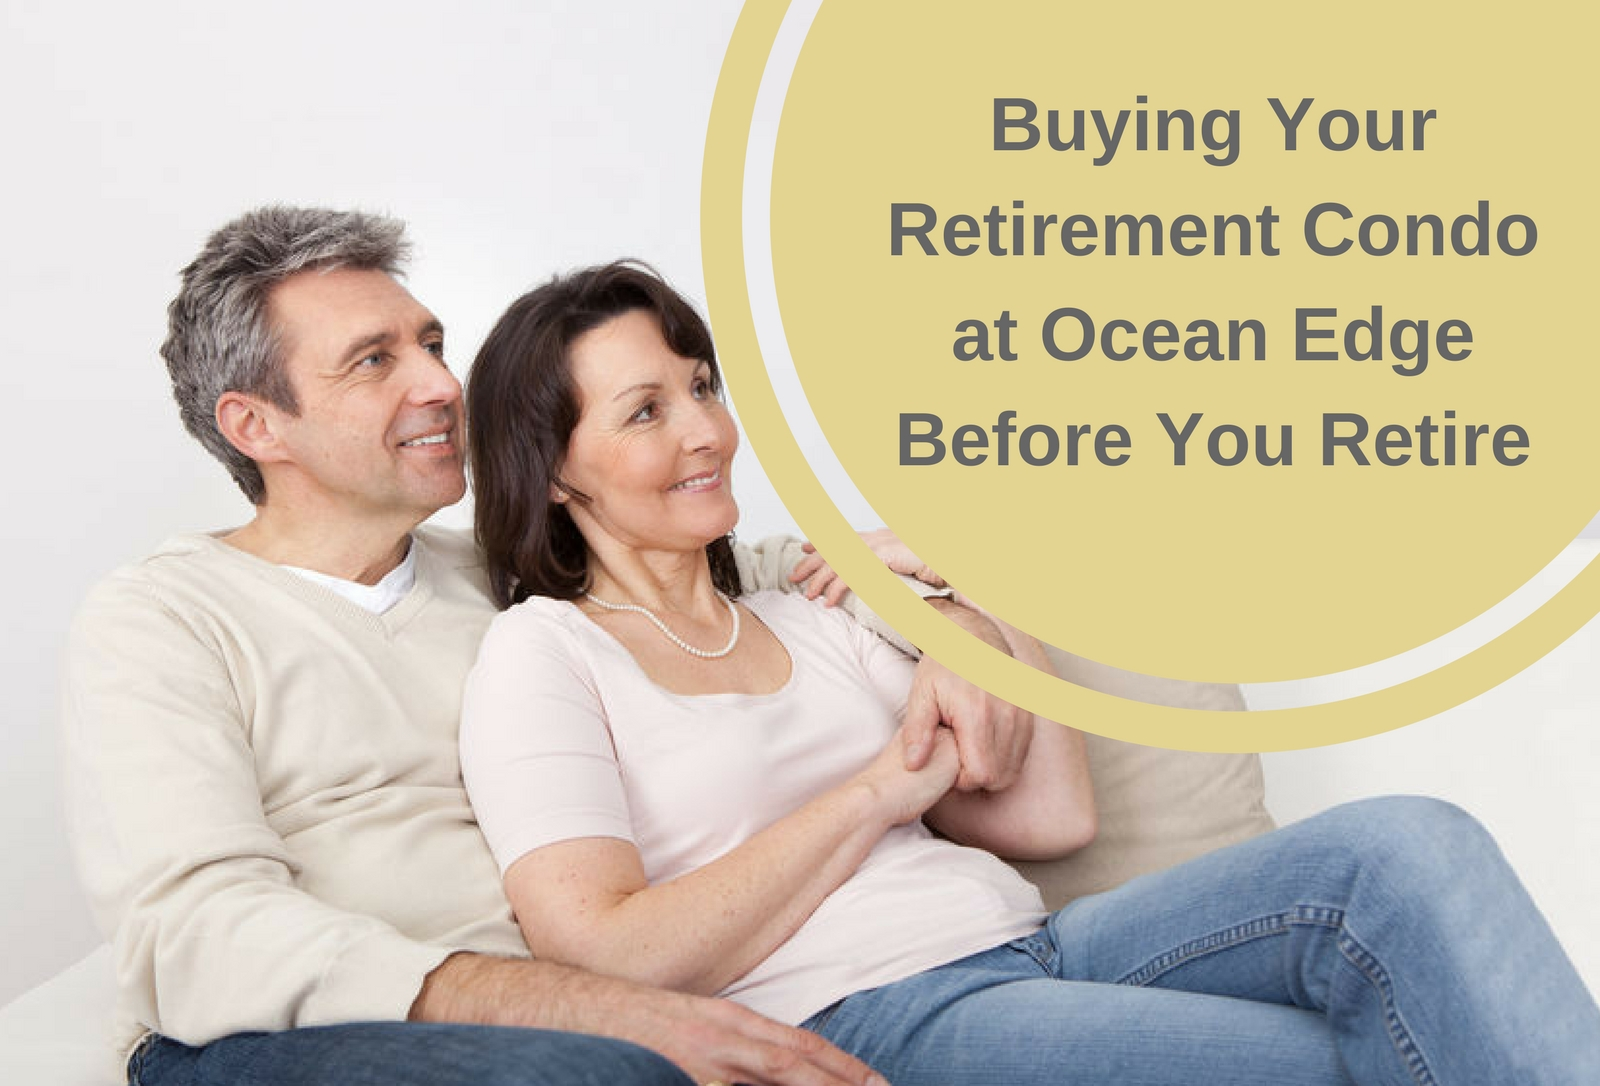 Buying Your Retirement Condo at Ocean Edge Before You Retire